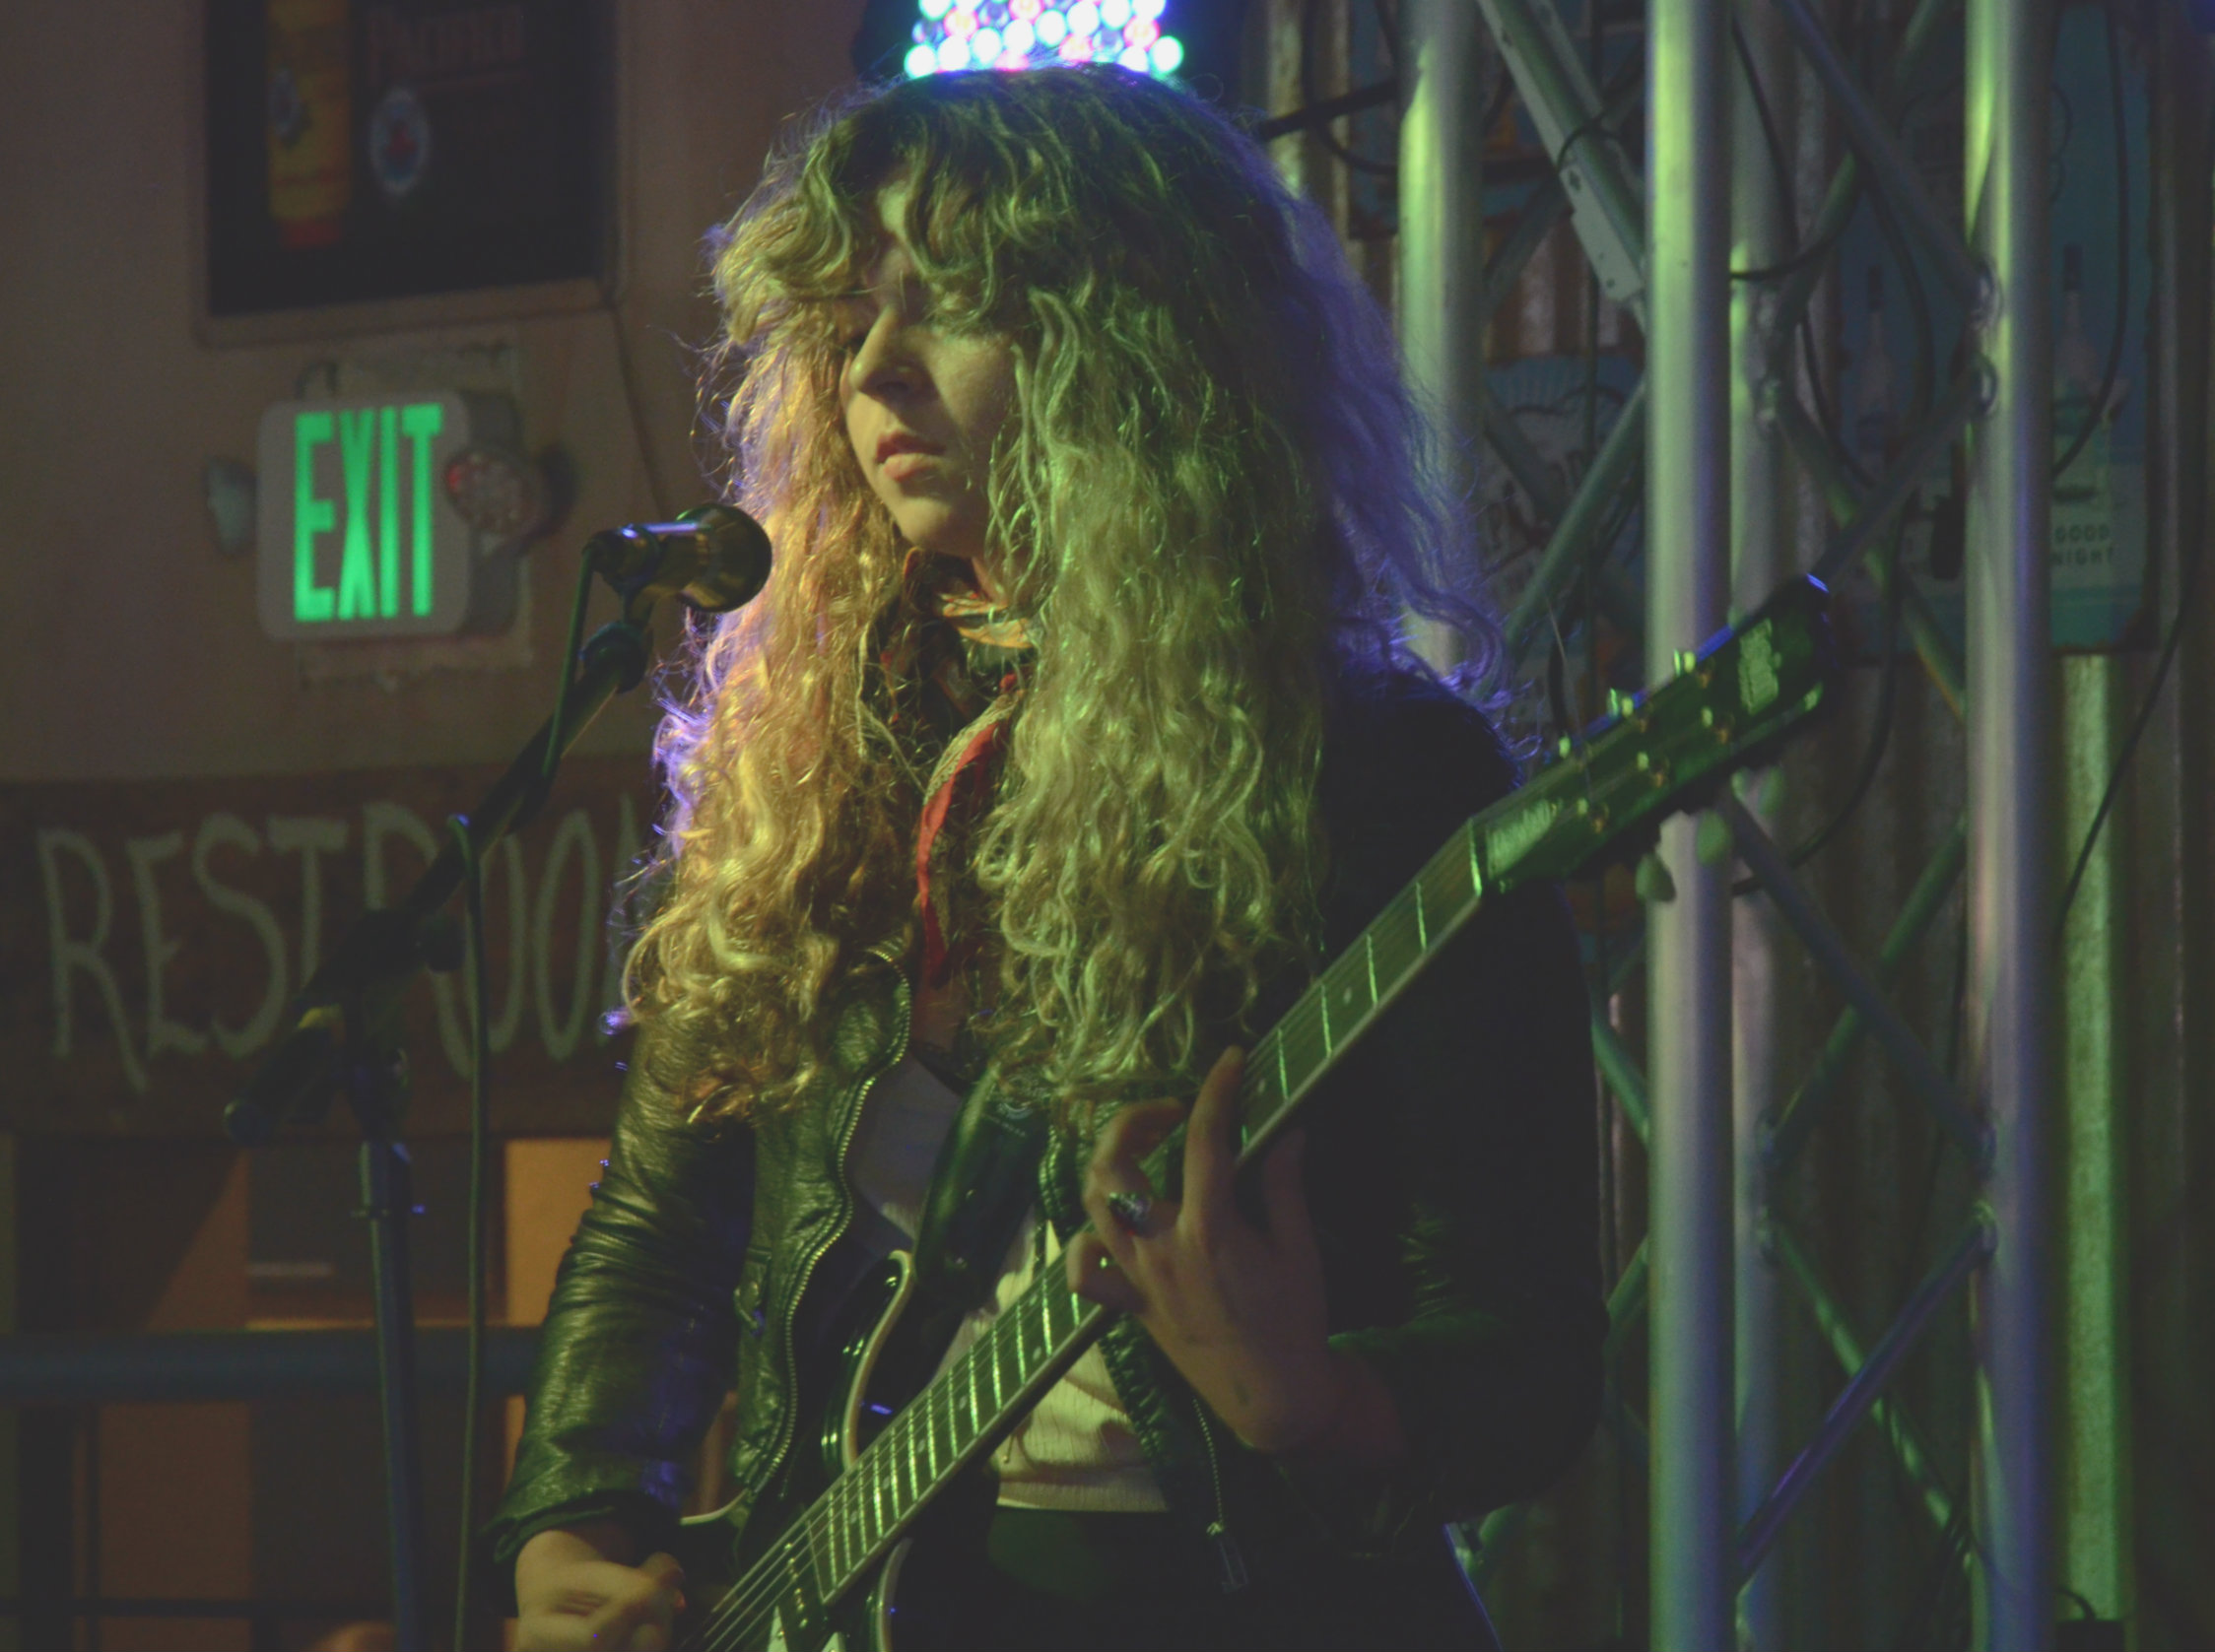 Photo: The Velveteers at Westword Music Showcase 2017